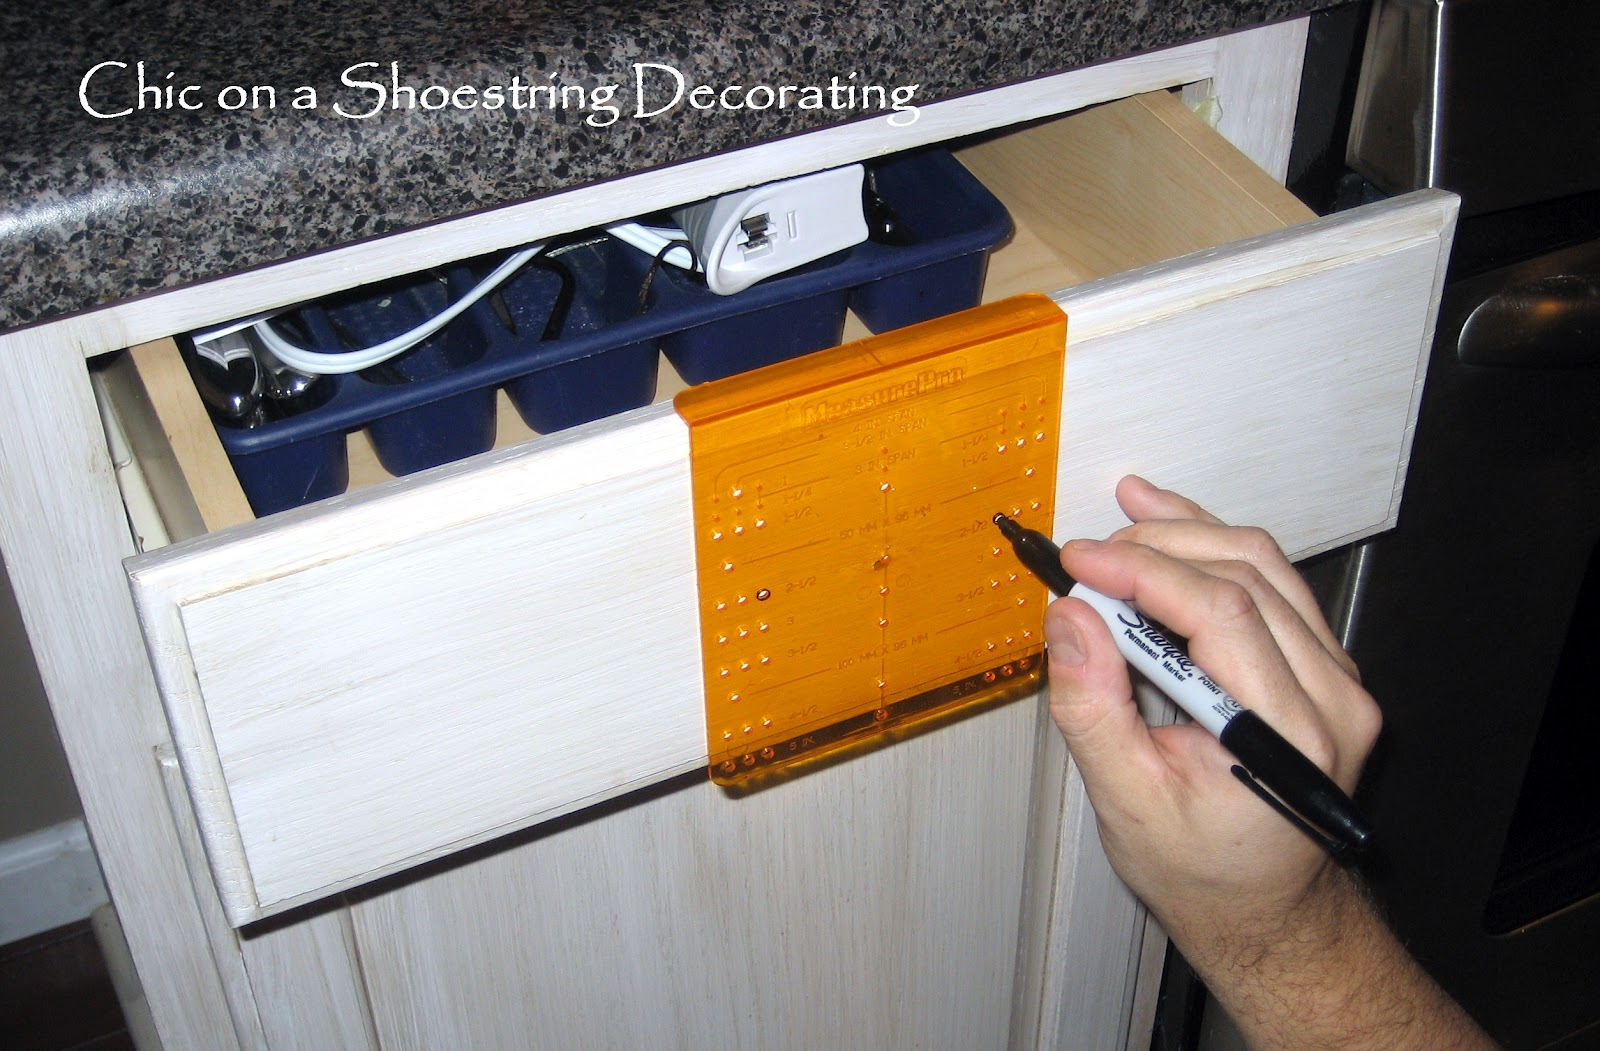 How To Install Kitchen Cabinet Hardware Chic On A Shoestring Decorating How To Change Your